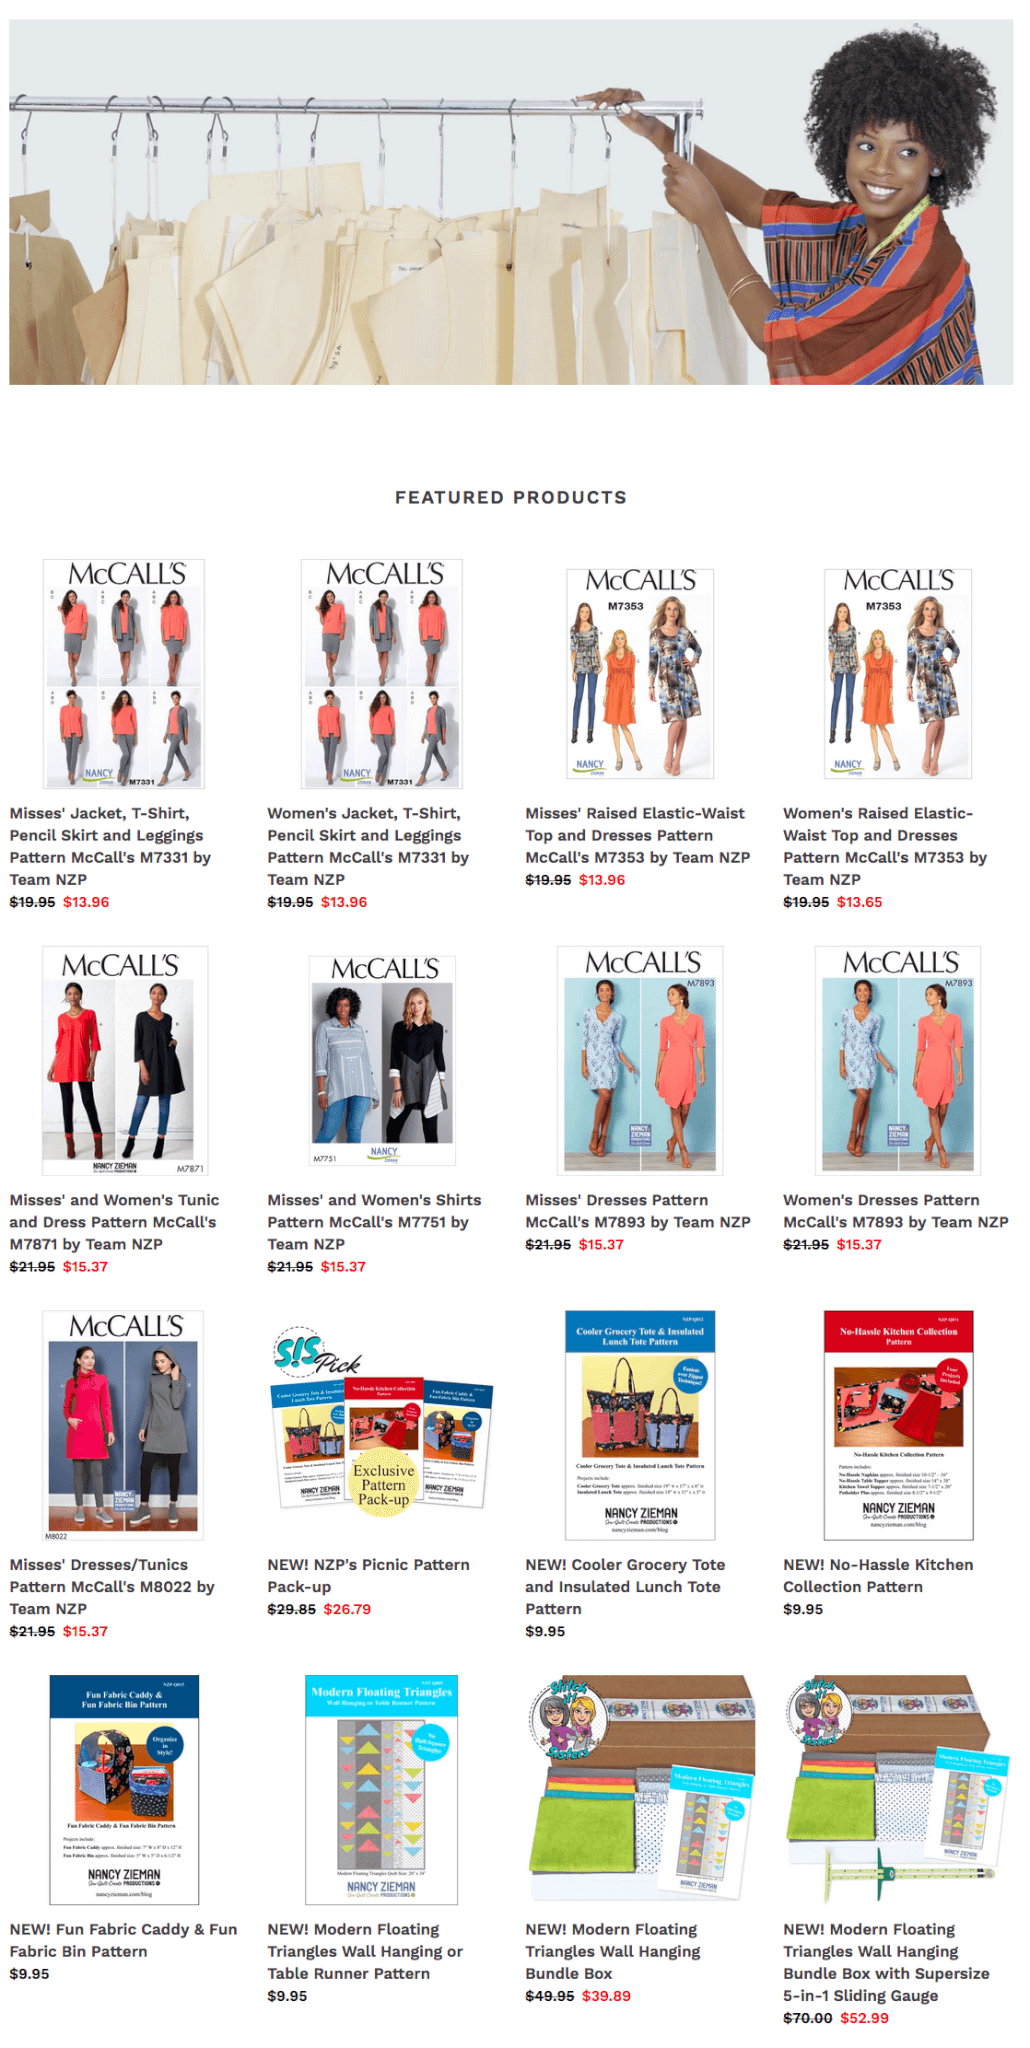 Buy Sewing Patterns by the Stitch it! Sisters at Nancy Zieman Productions at ShopNZP.com